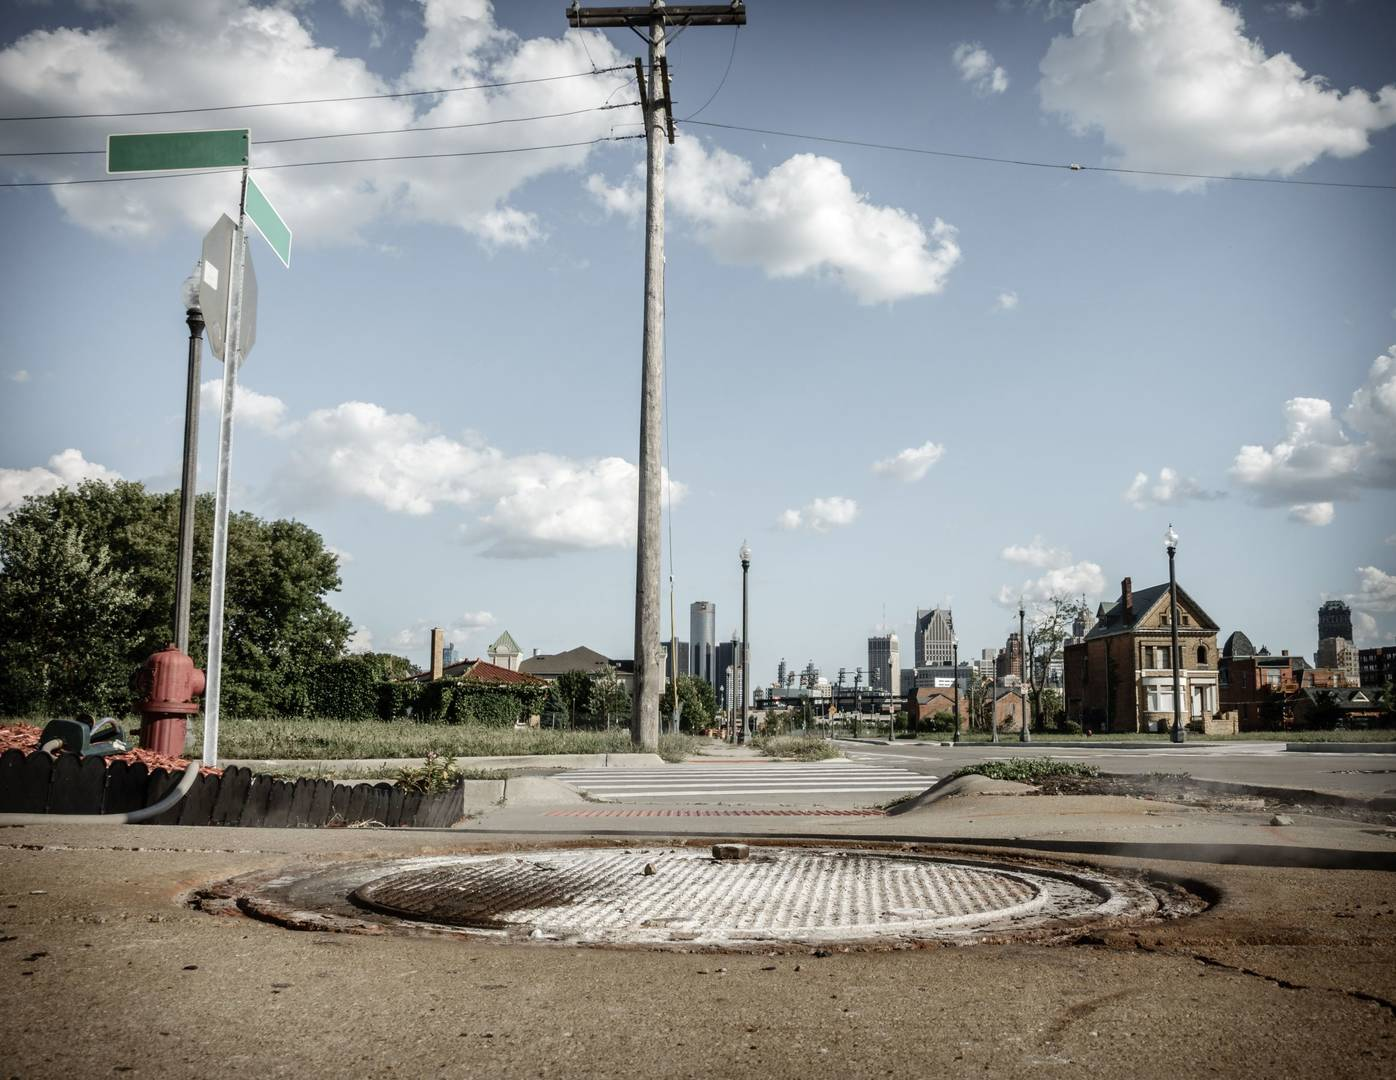 Detroit is making a investment in water and sewer systems